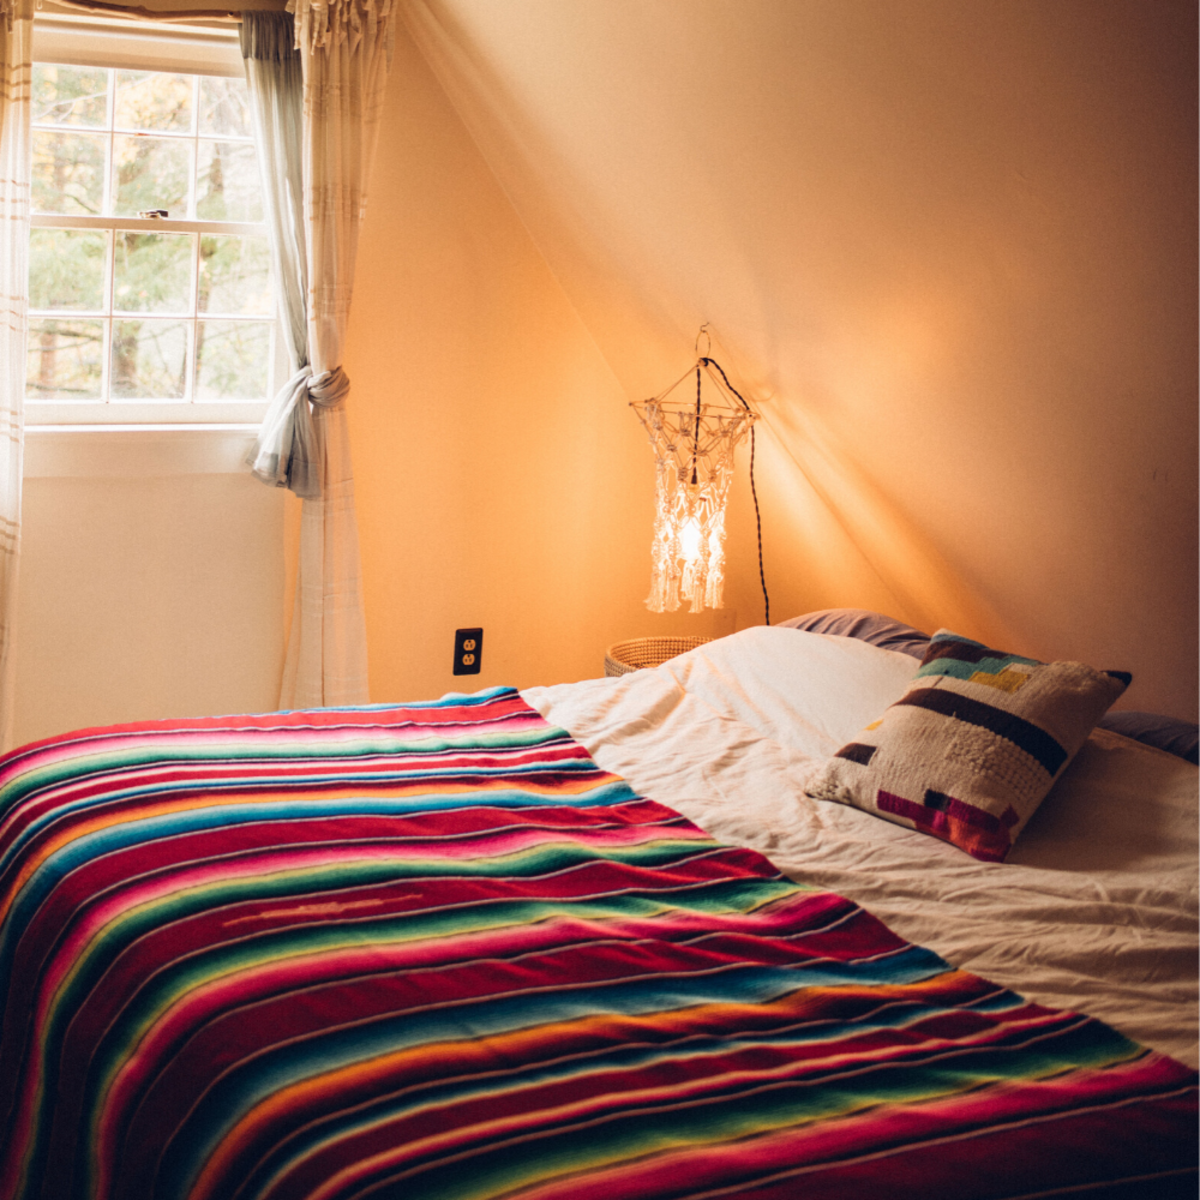 Bedside necessities: a light and an electric plug-in.